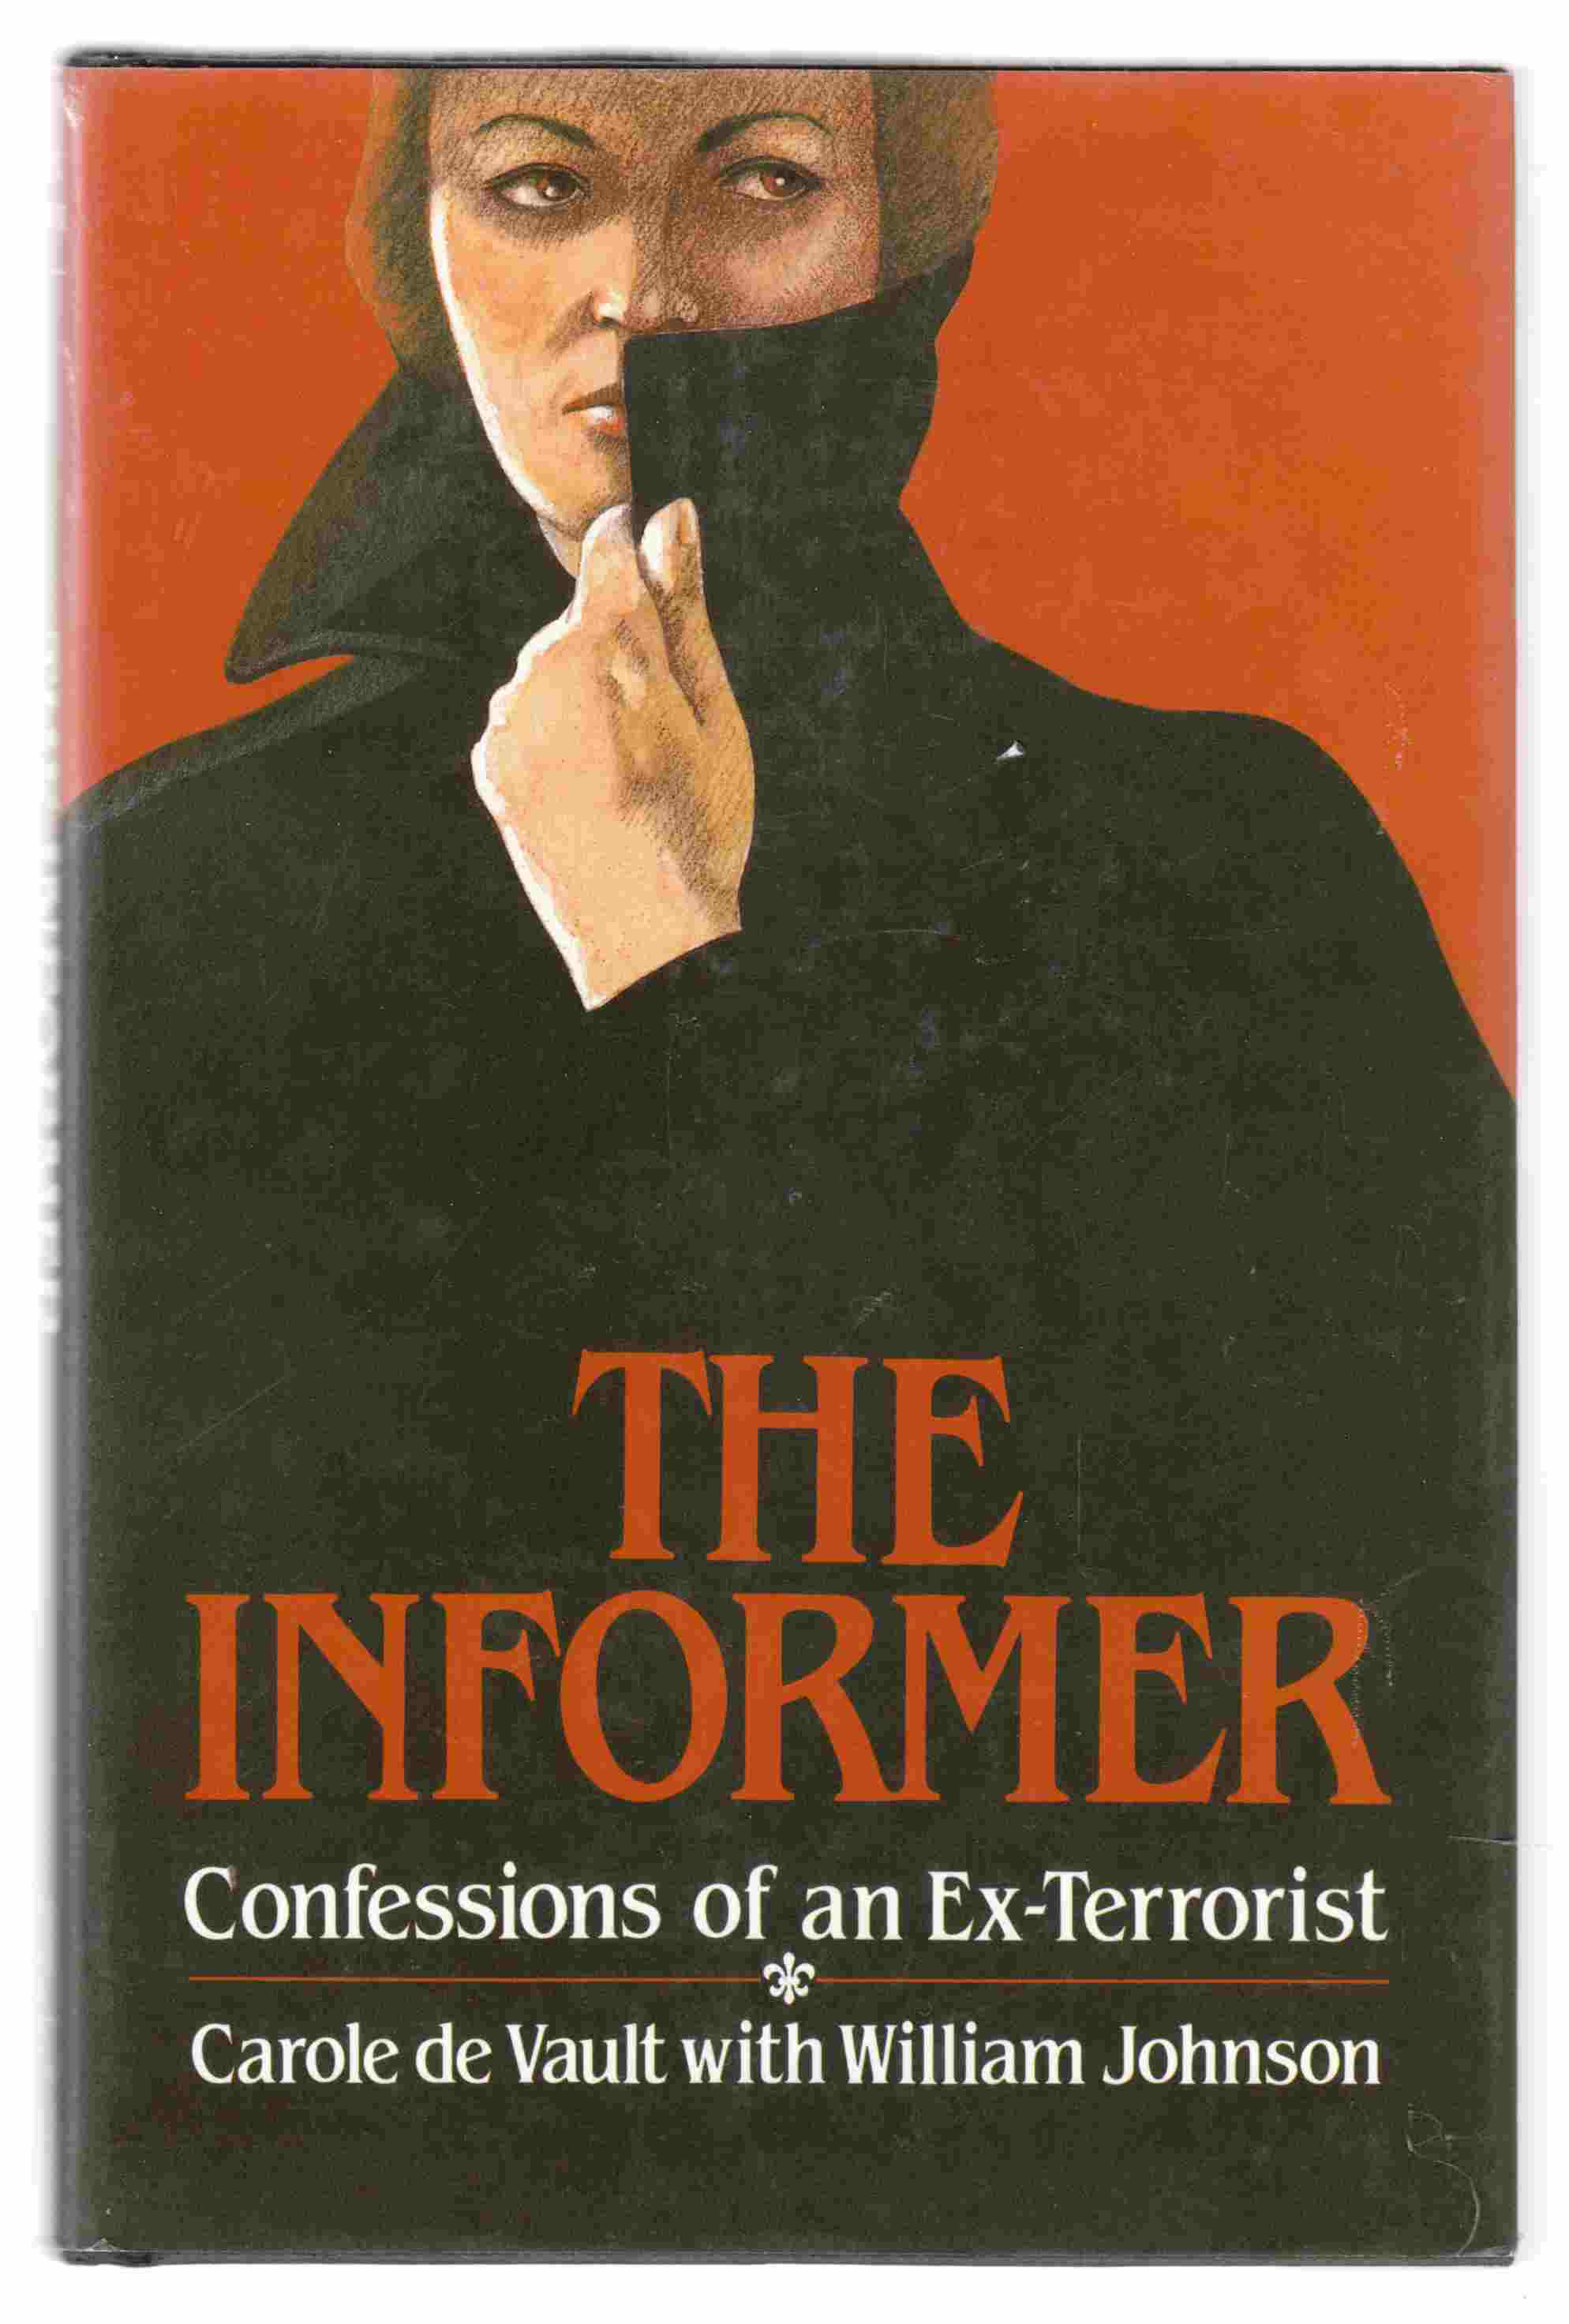 Image for The Informer Confessions of an Ex-Terrorist